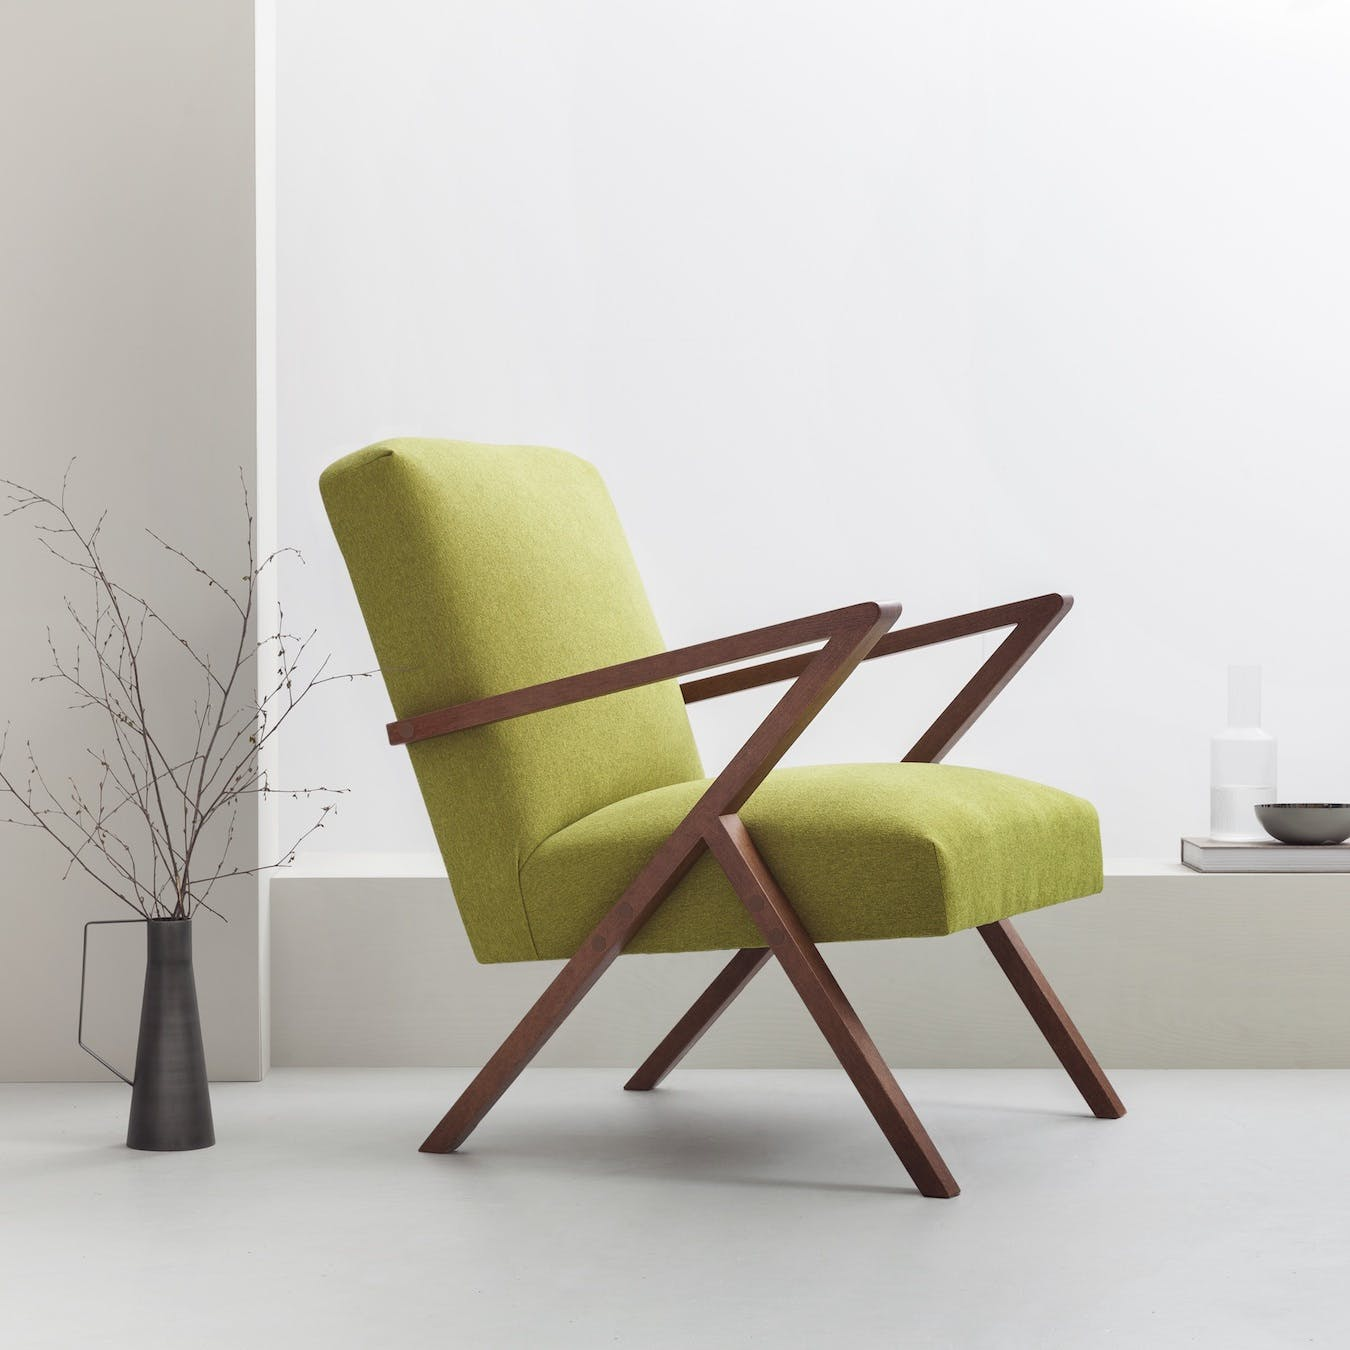 Retrostar Chair - Basic Line in Mustard Green